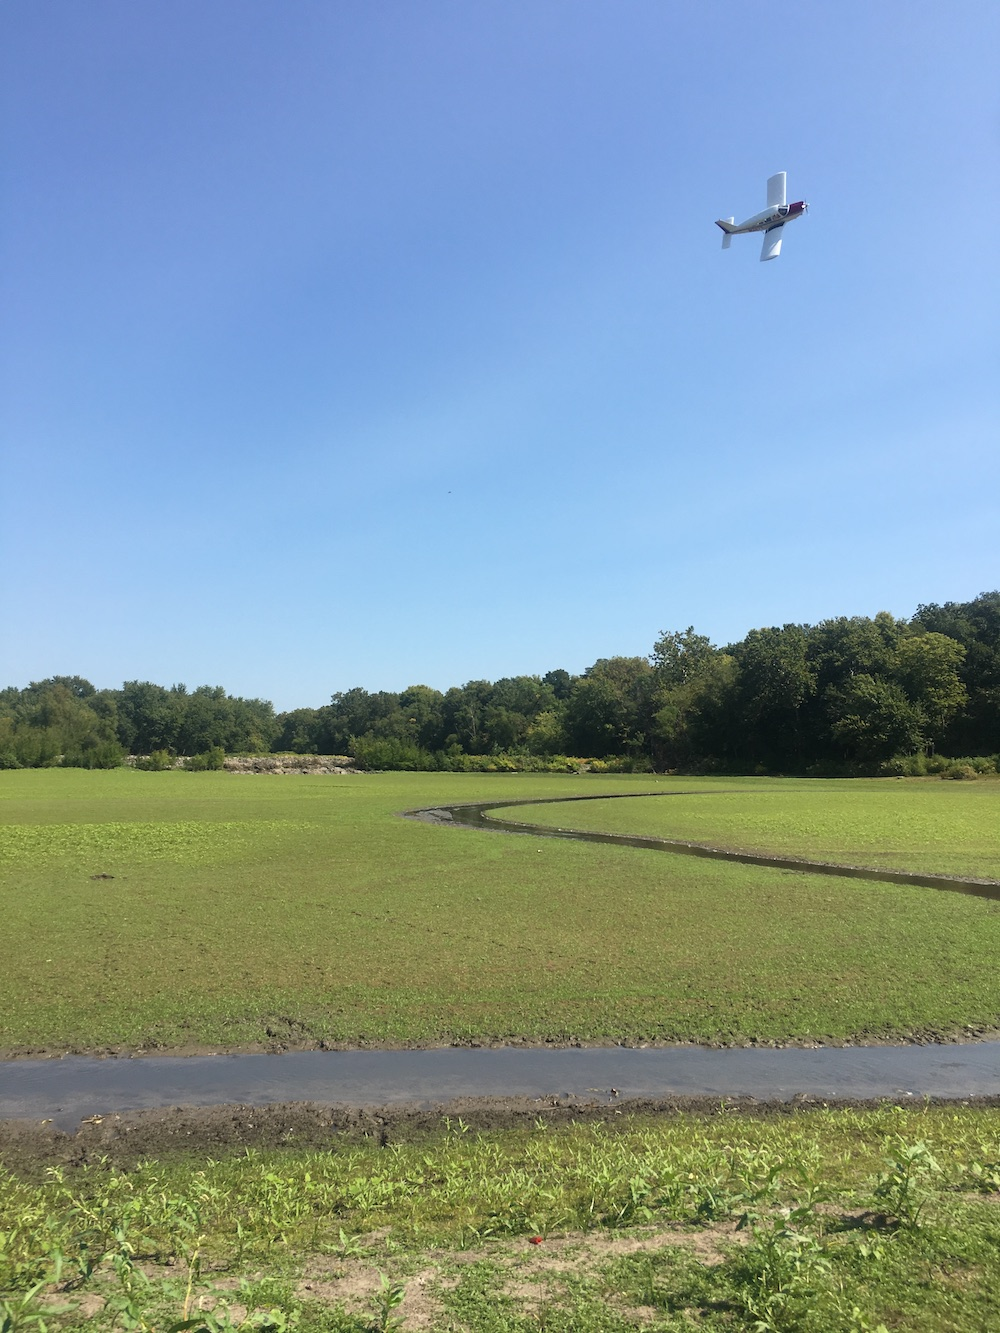 A small airplane flies low and on its side over a lush green waterway. Trees are in the background with a blue sky above.